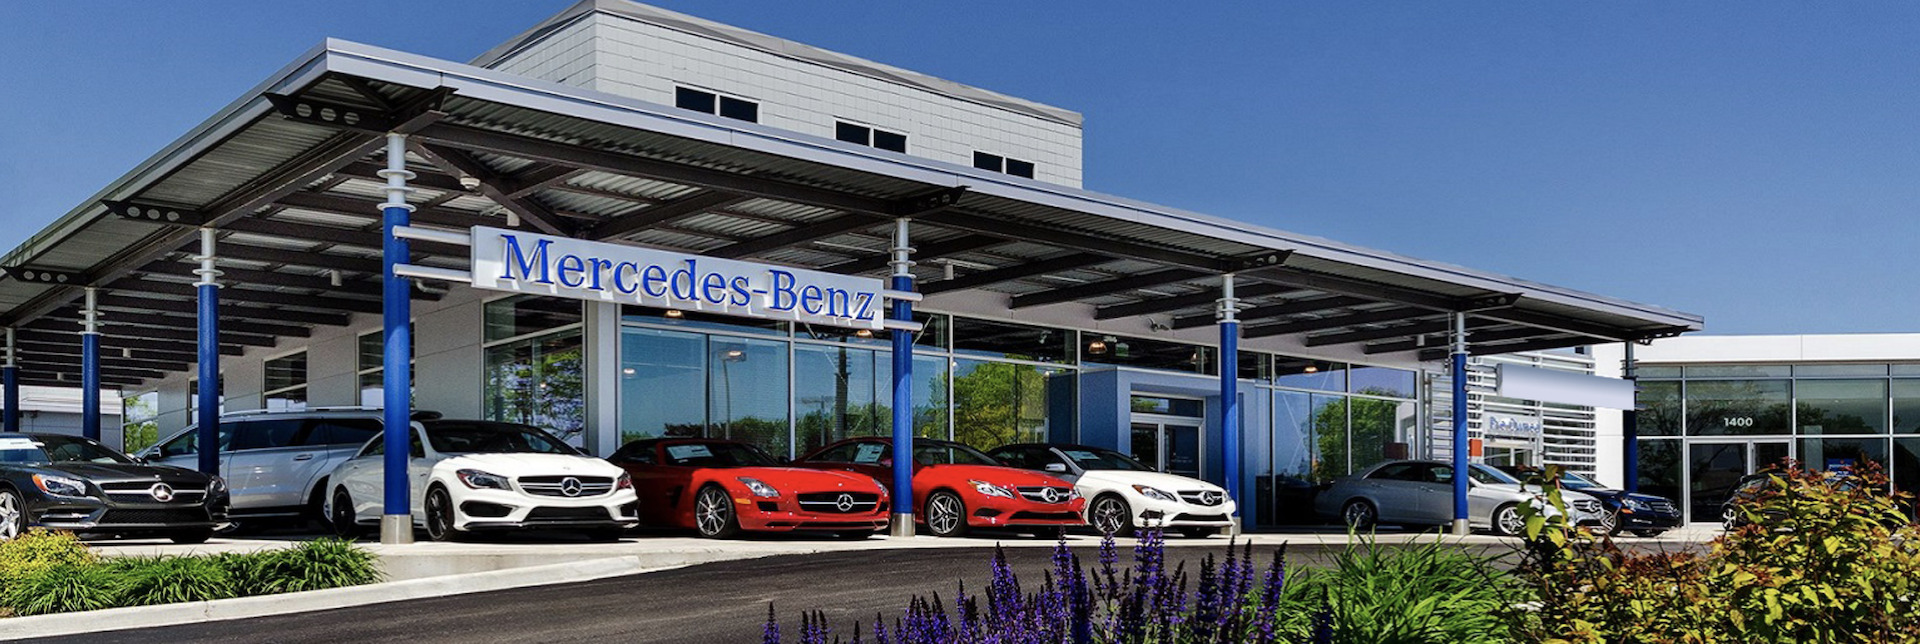 mercedes-benz of milwaukee north near dealership west allis wi